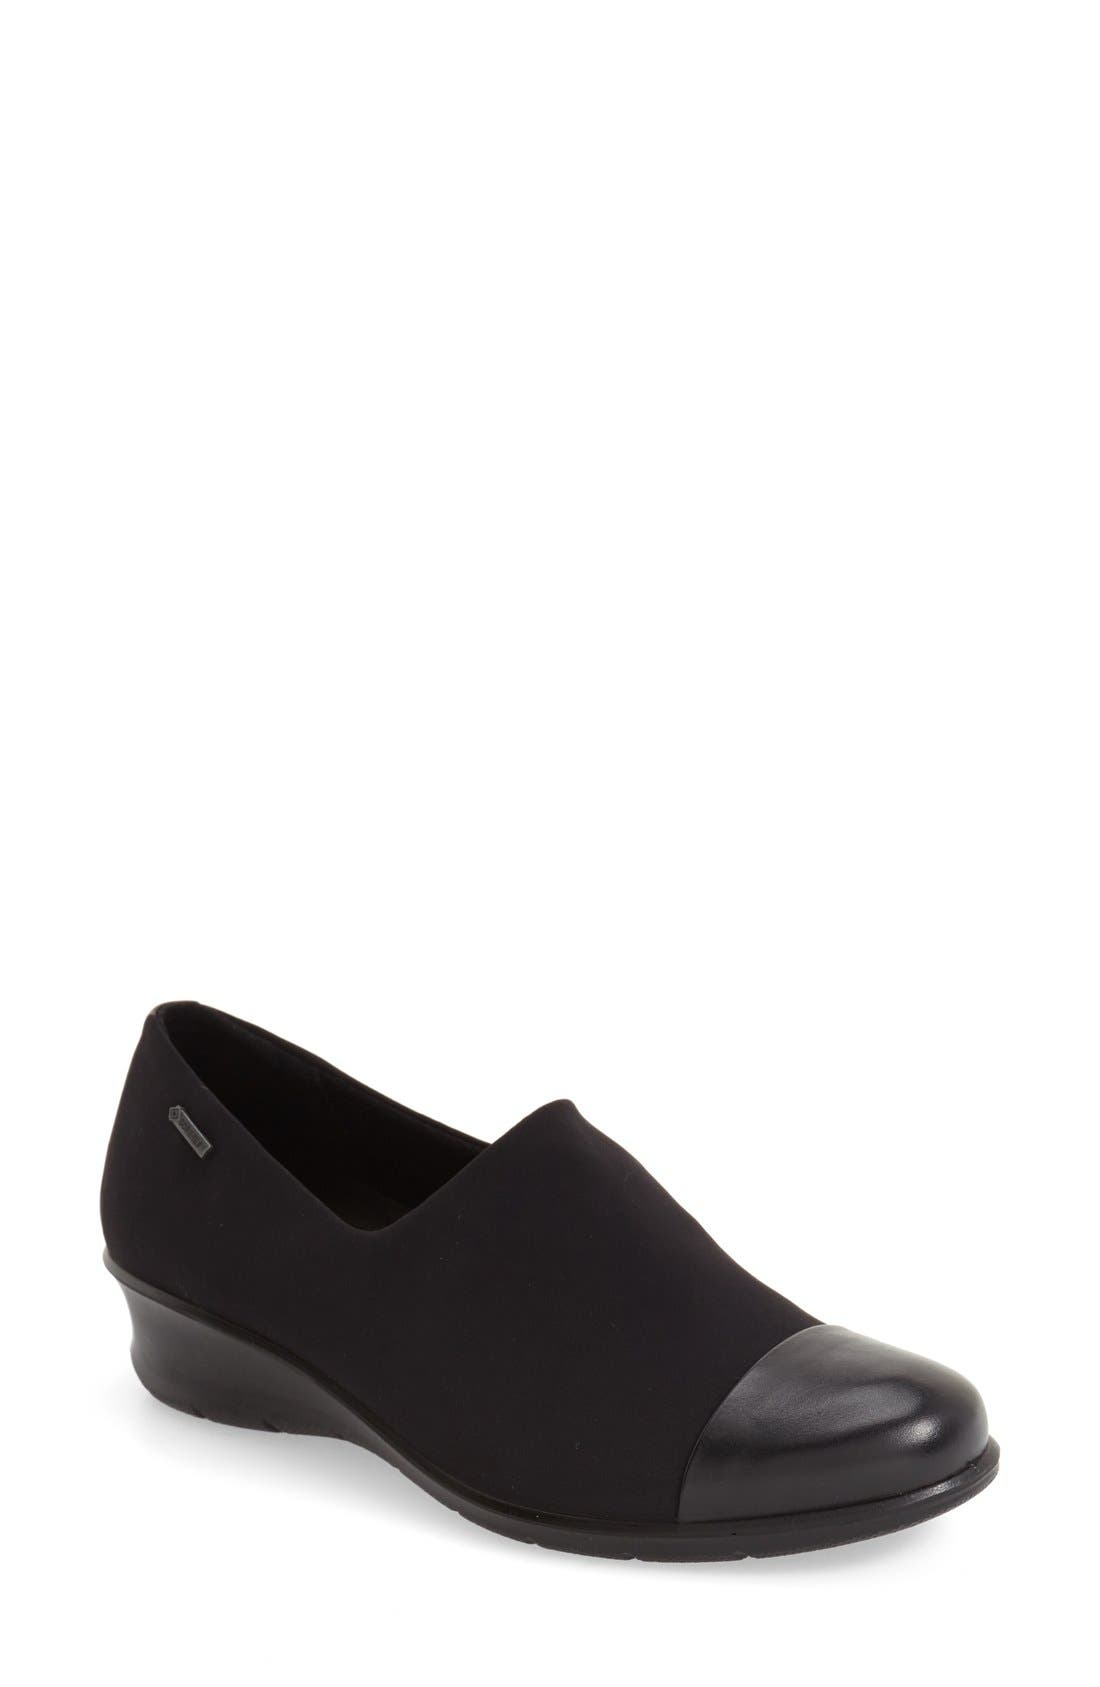 'Felicia GTX' Waterproof Wedge Loafer,                         Main,                         color, BLACK GORE FABRIC